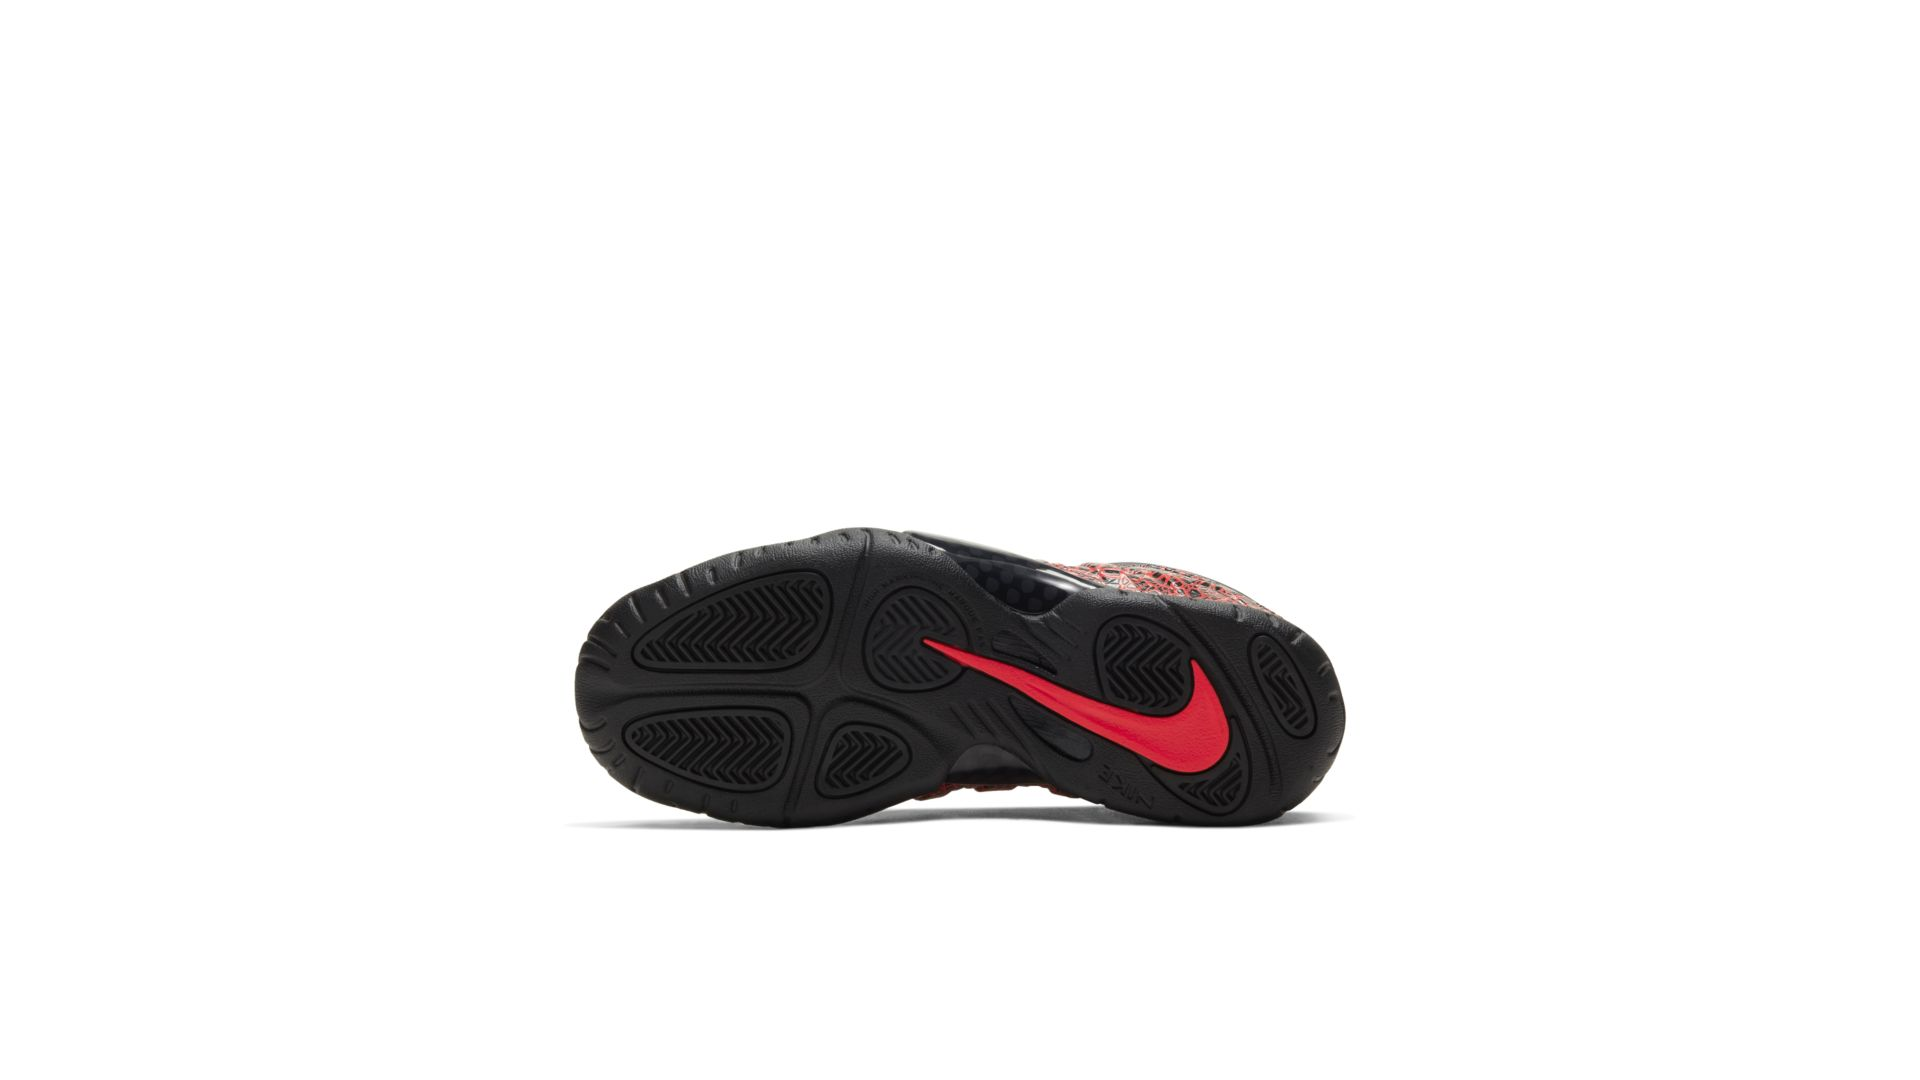 Nike Air Foamposite One Cracked Lava (GS) (644791-012)